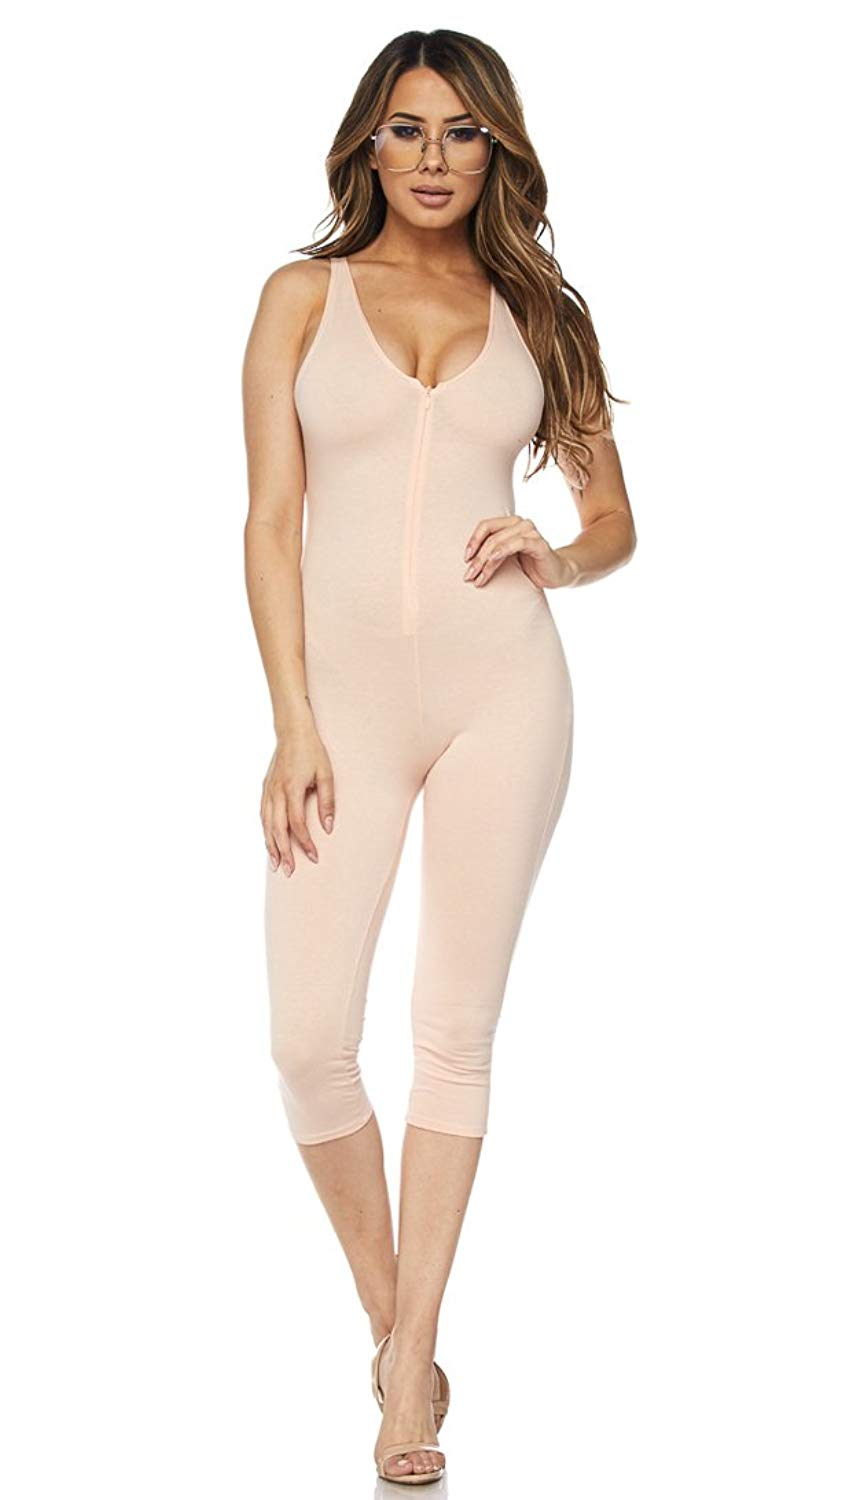 a250473073 Get Quotations · SOHO GLAM Blush Sleeveless Capri Unitard